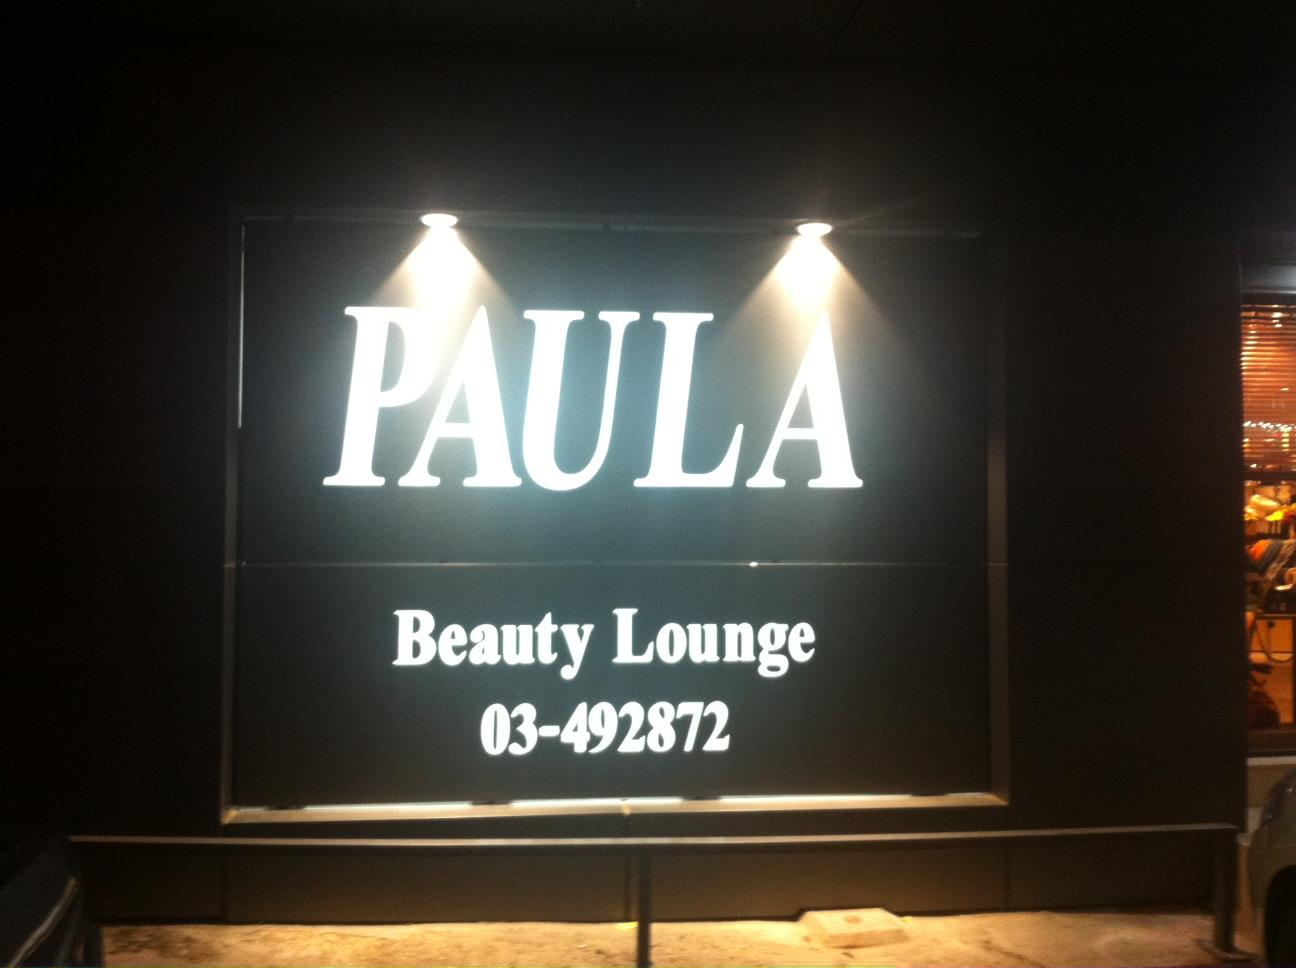 Beauty Lounge by Paula